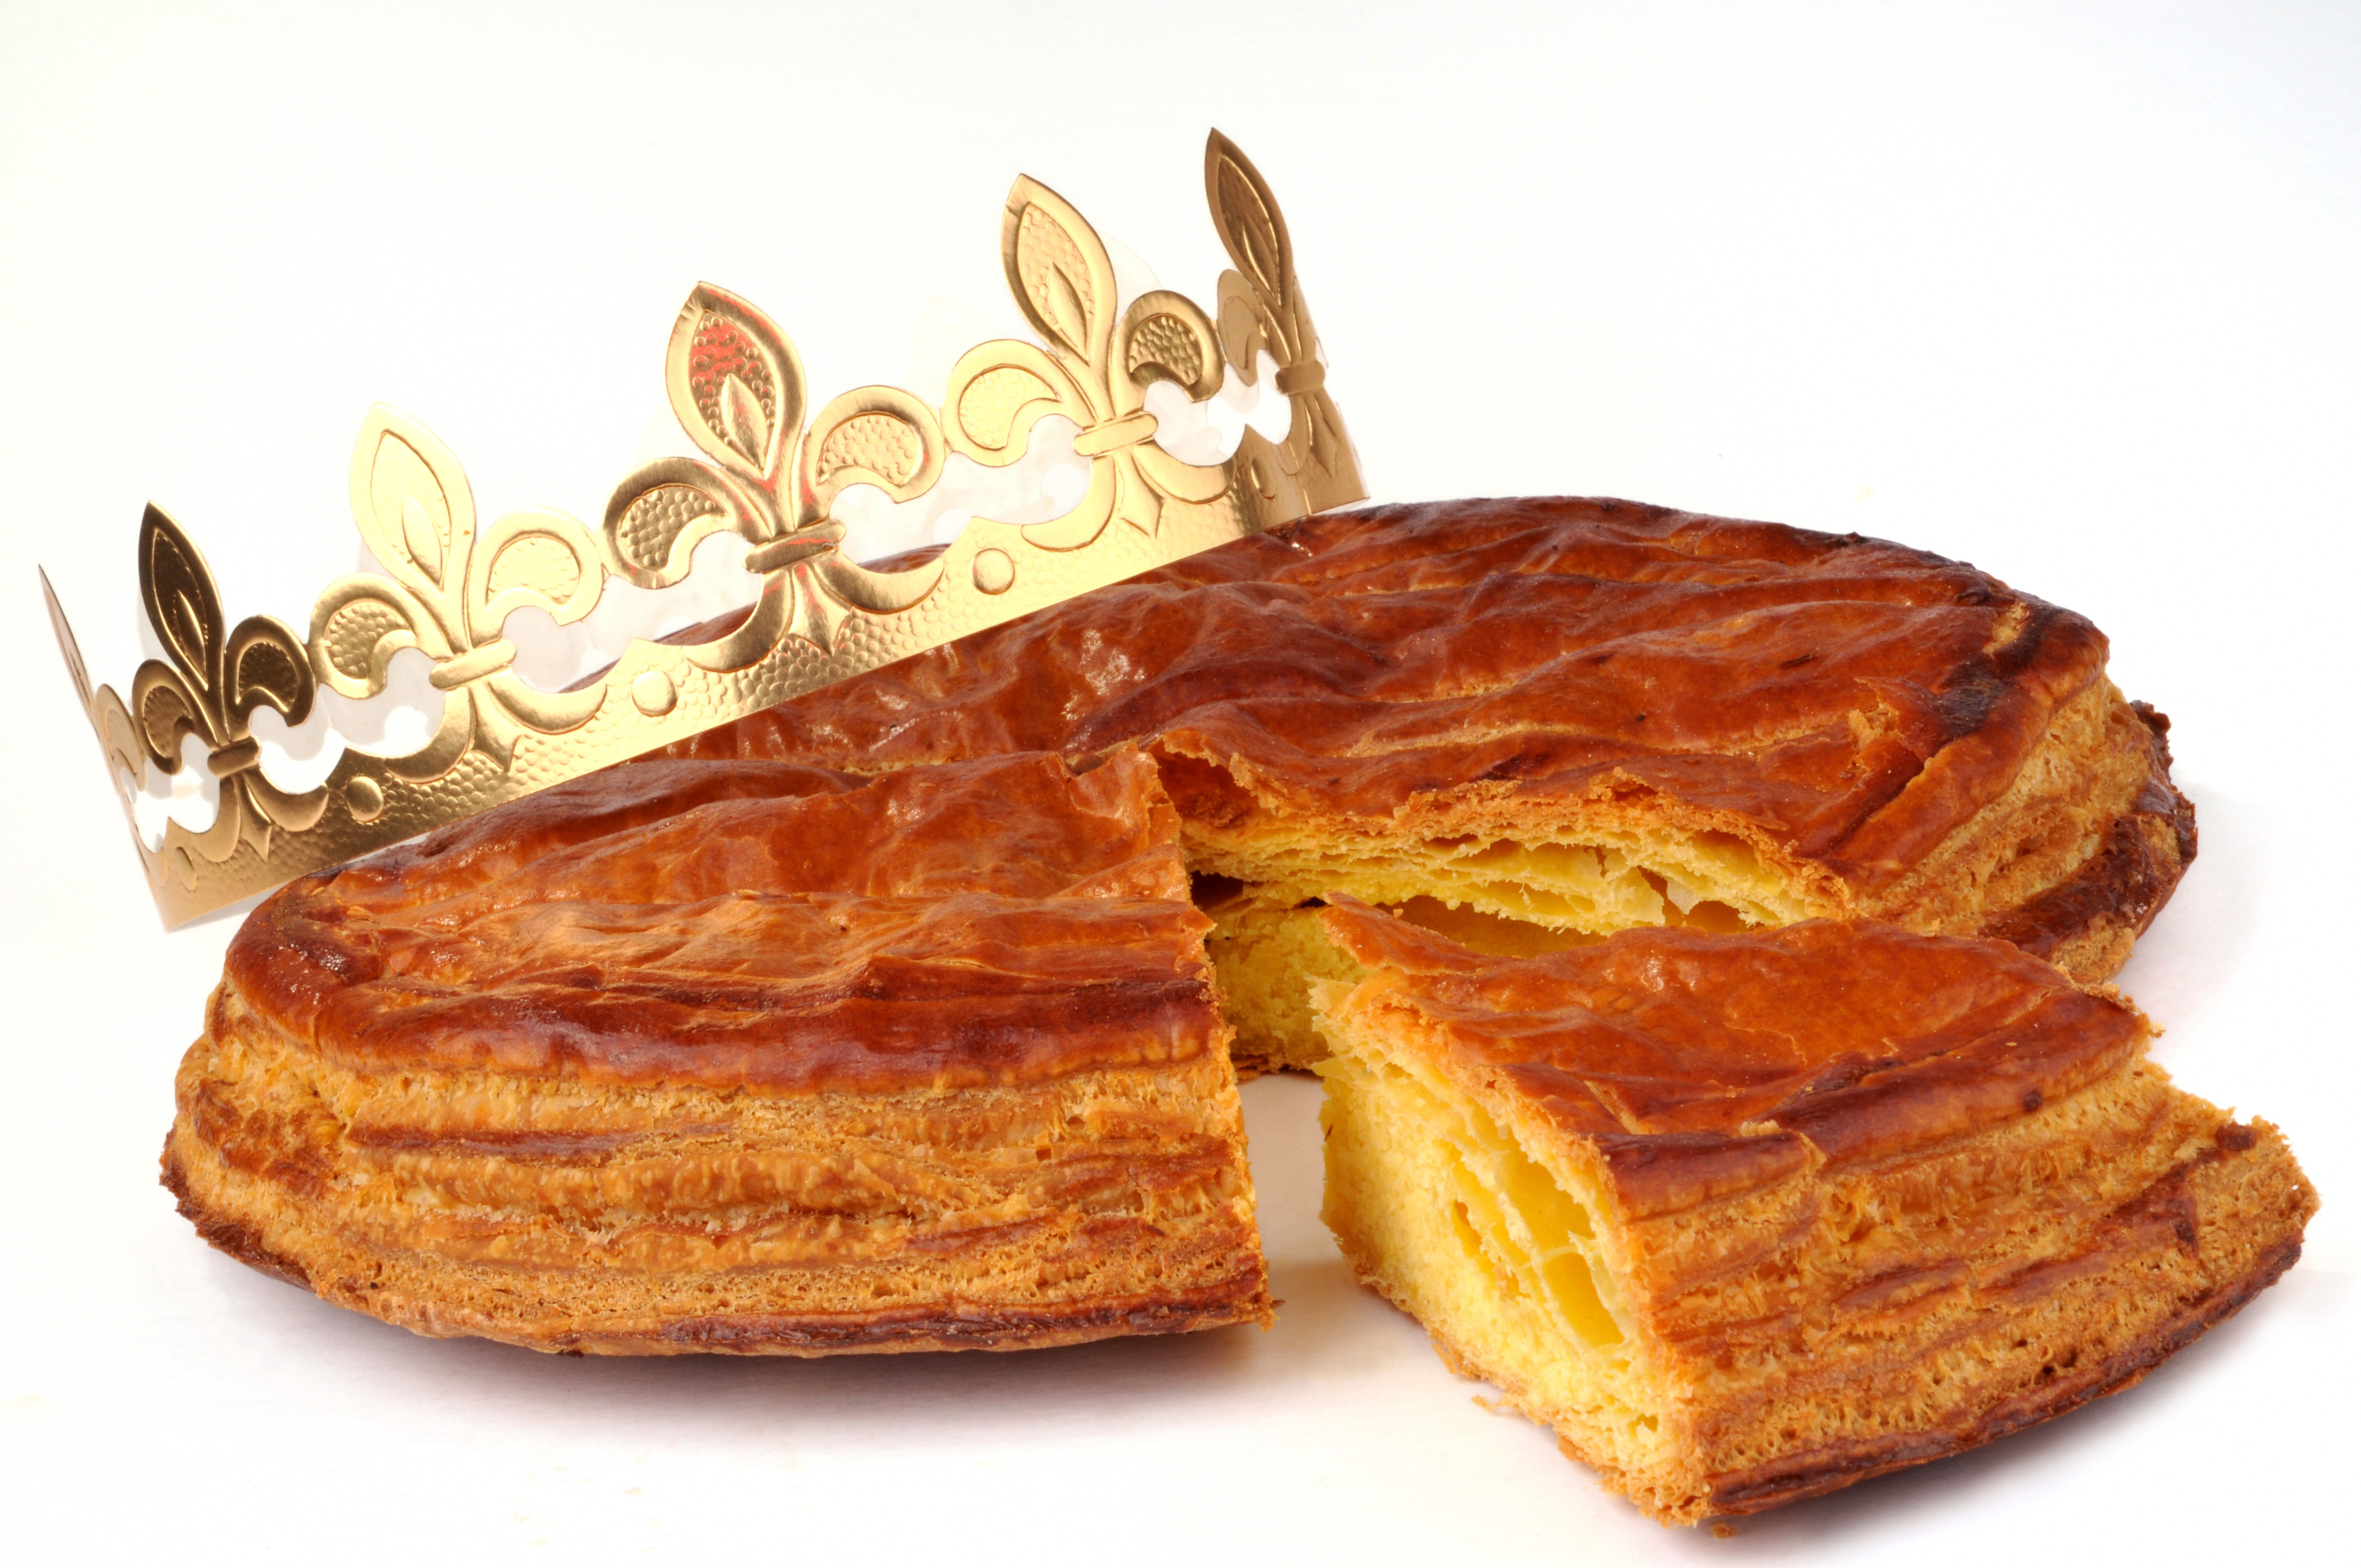 January Pie Of The Month: Handmade Galette des Rois (King Cake)